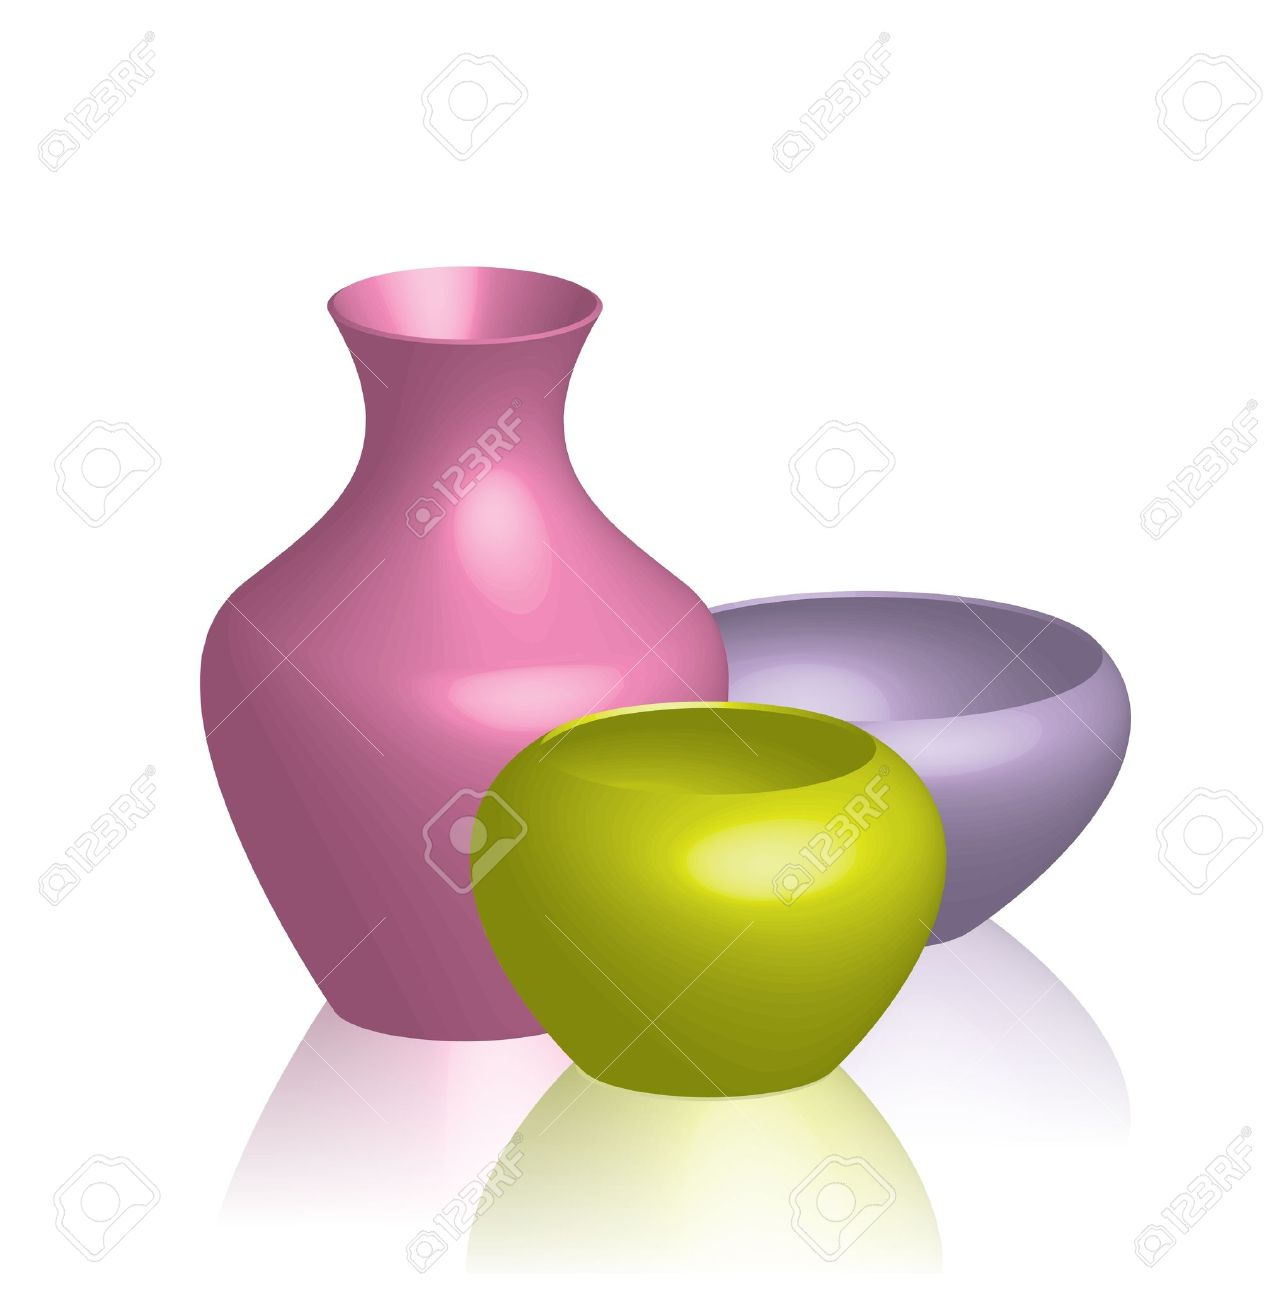 illustration of colorful vases Stock Vector - 12670503